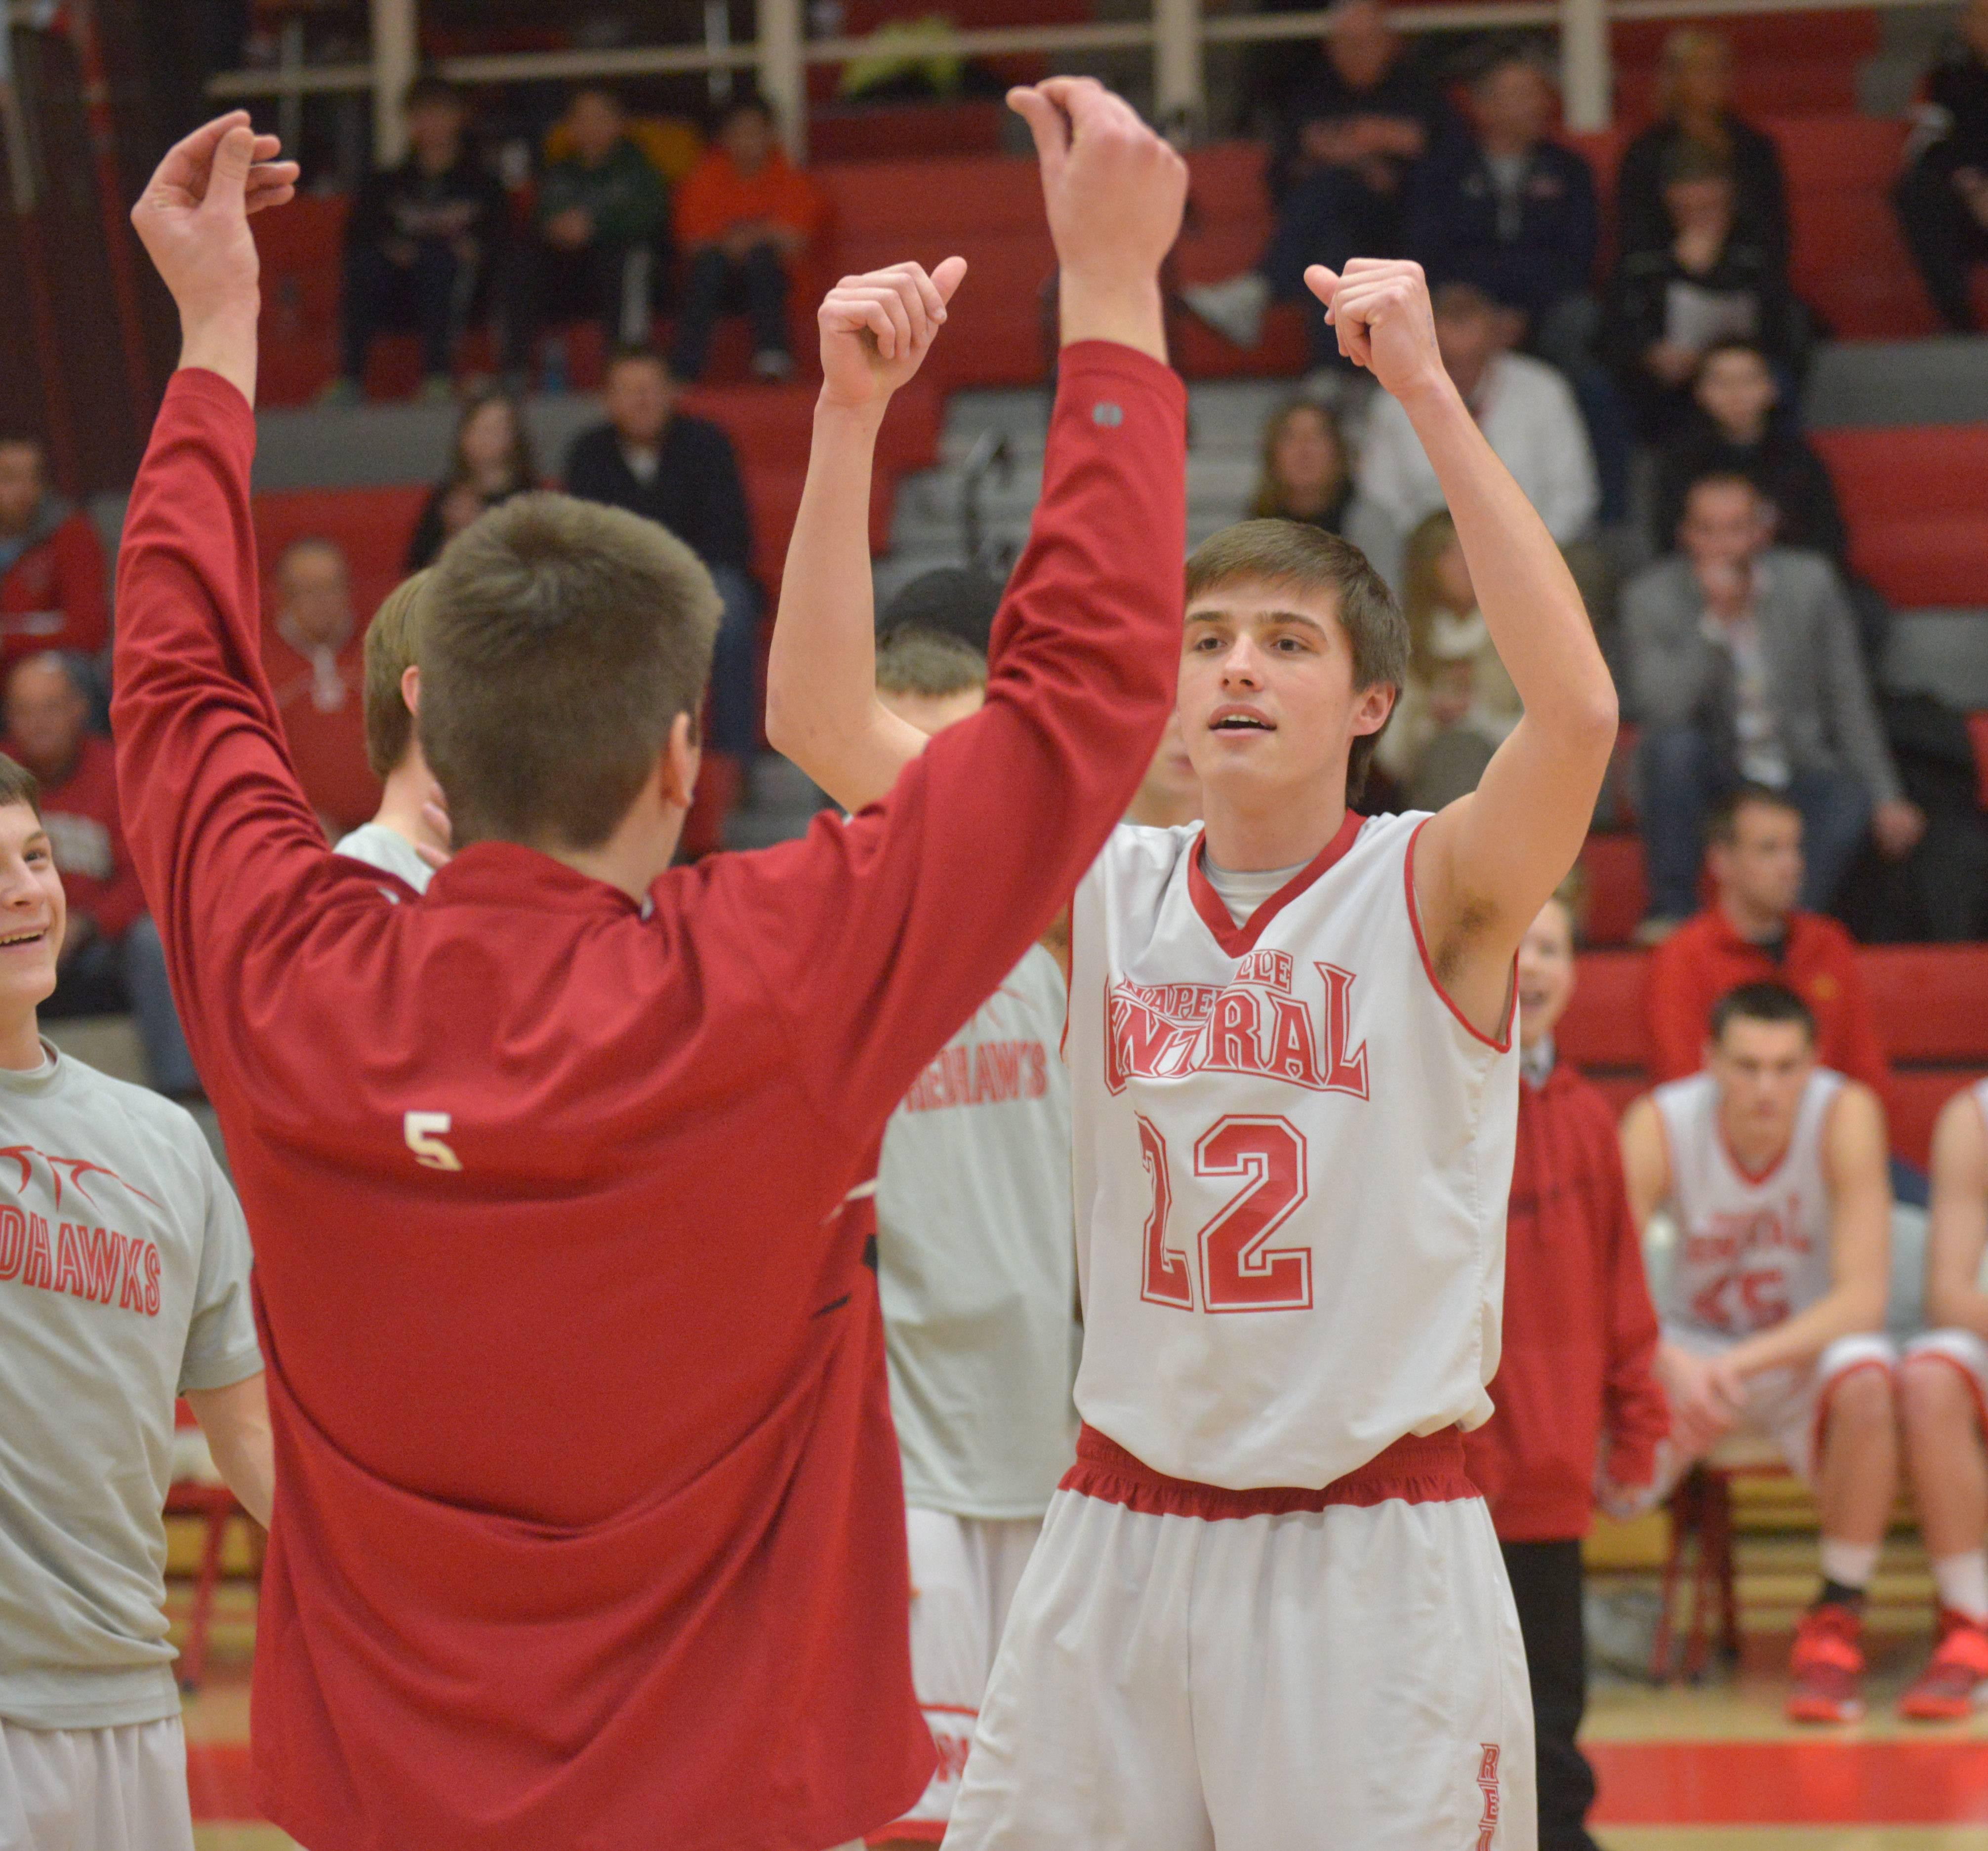 Images from the Naperville Central vs. Naperville North boys basketball game on Wednesday, Feb. 26, 2014.